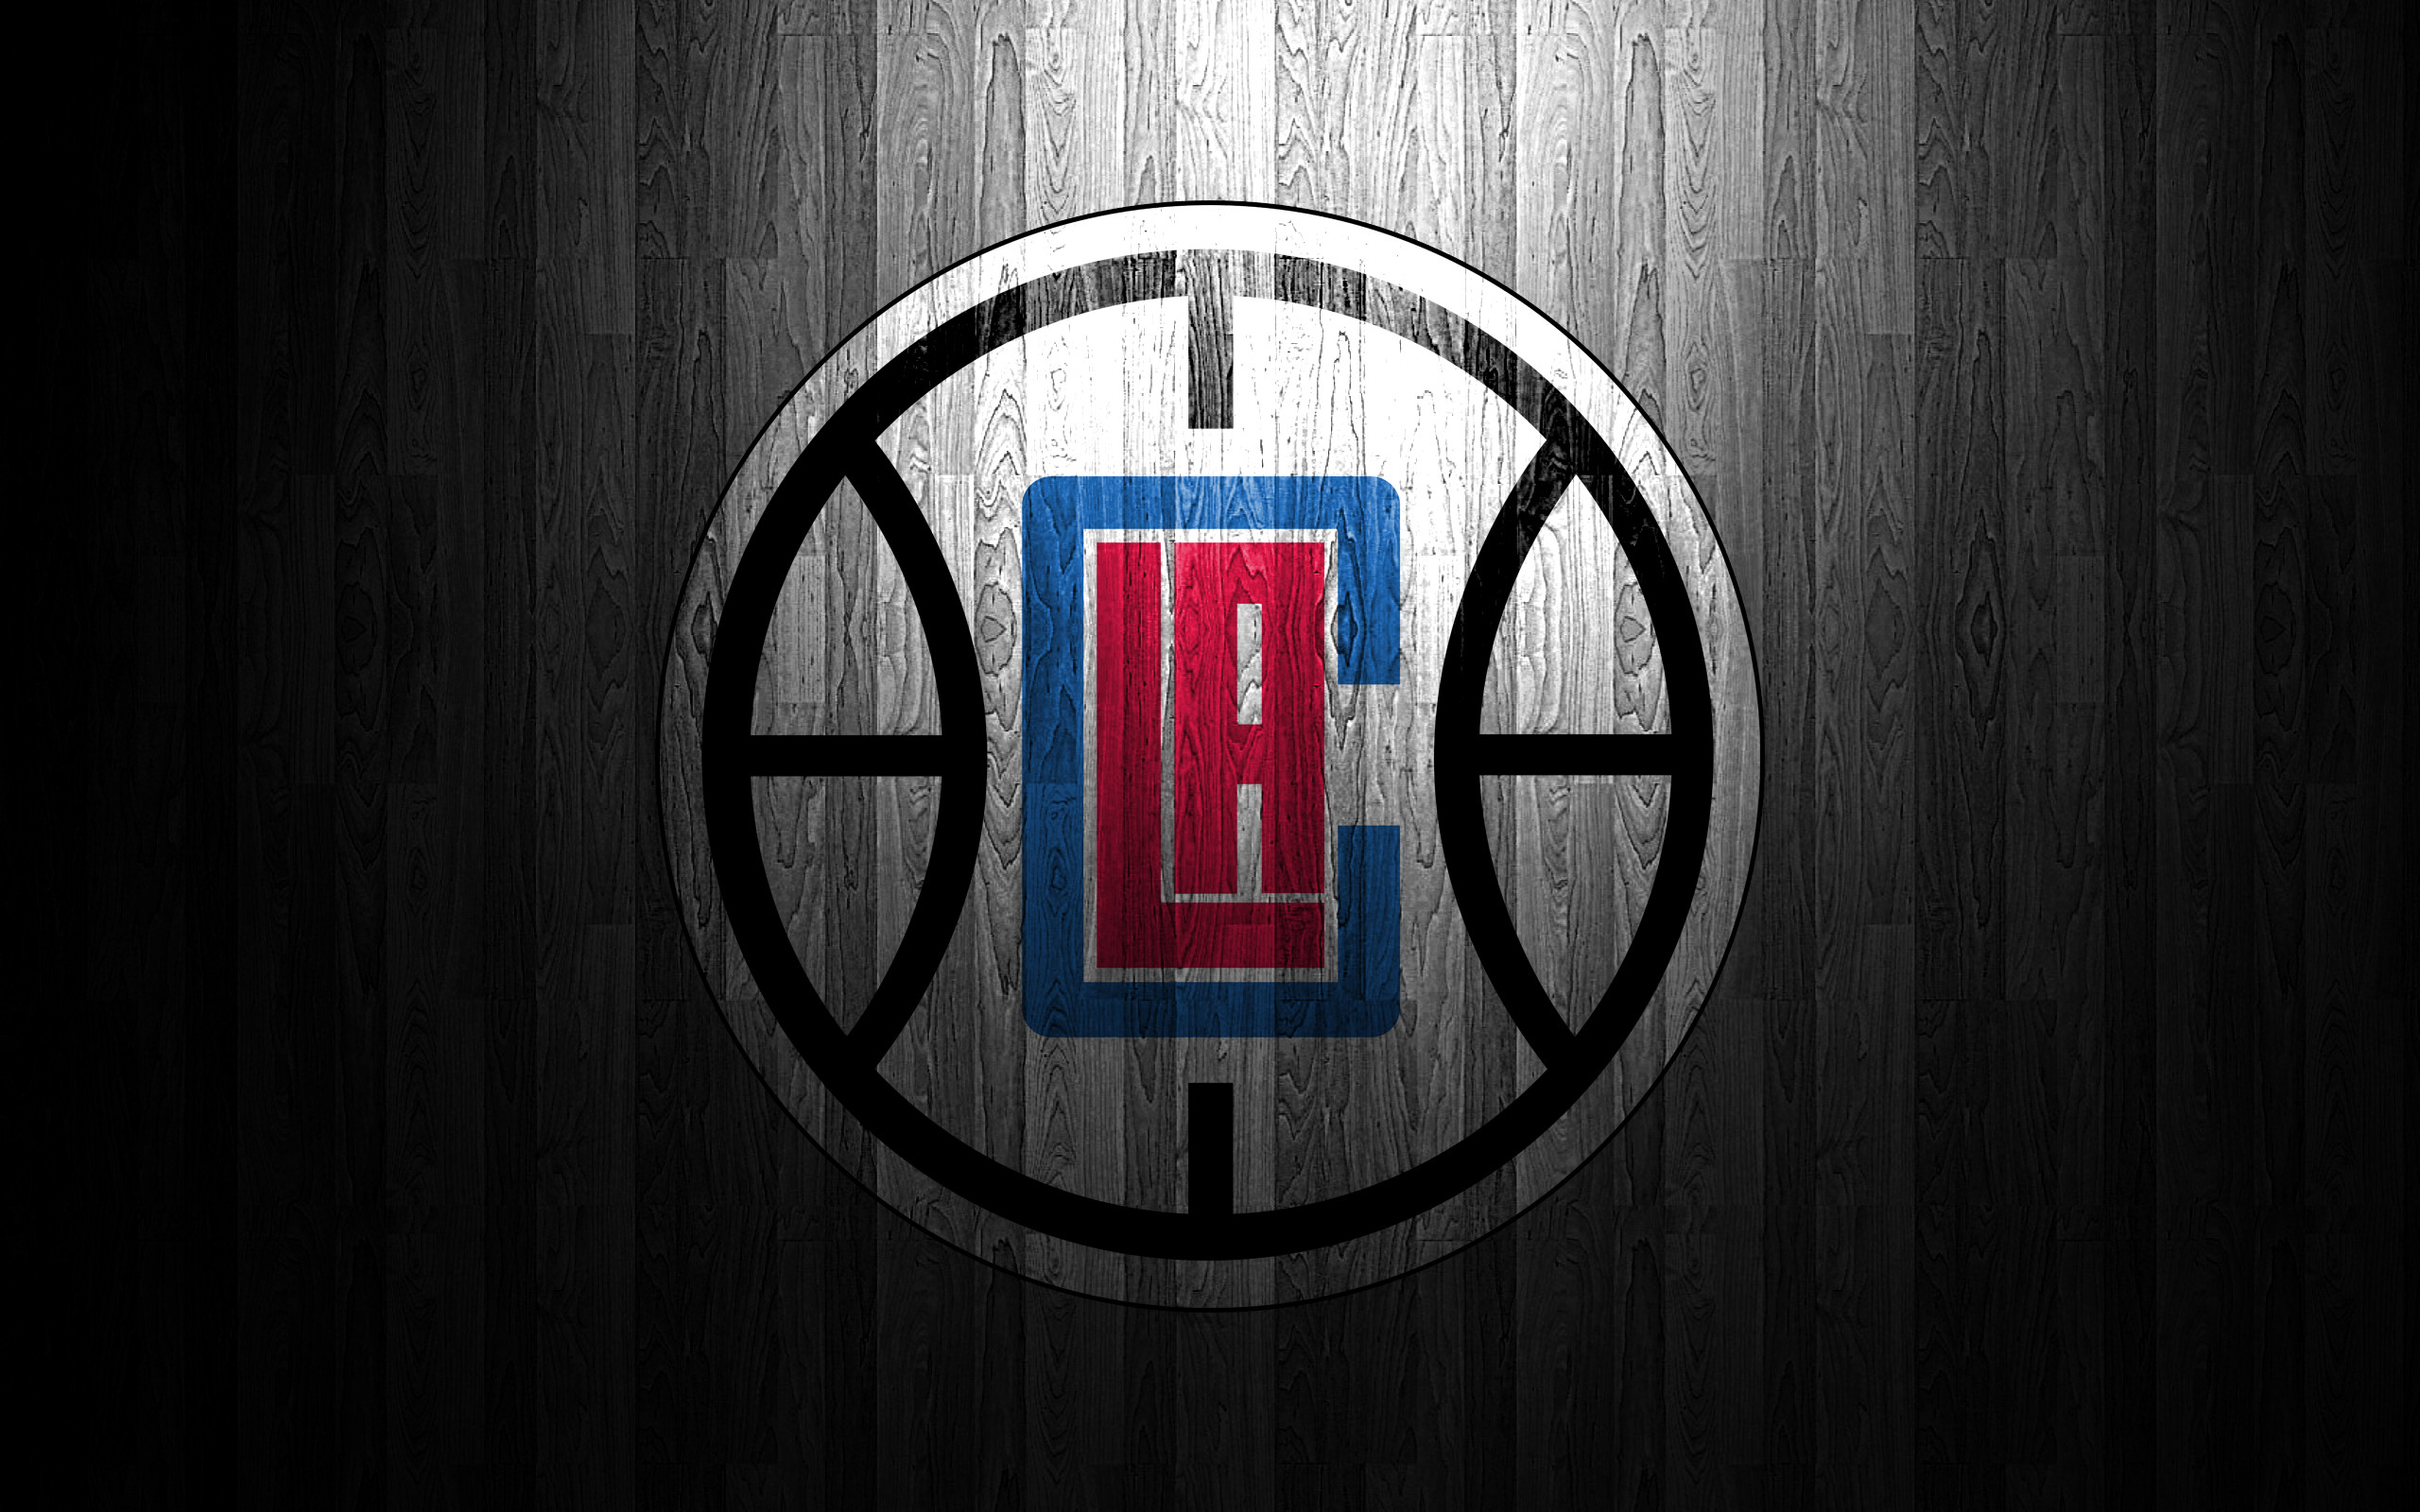 Los Angeles Clippers 2015 by GoDodgerz Los Angeles Clippers 2015 by  GoDodgerz